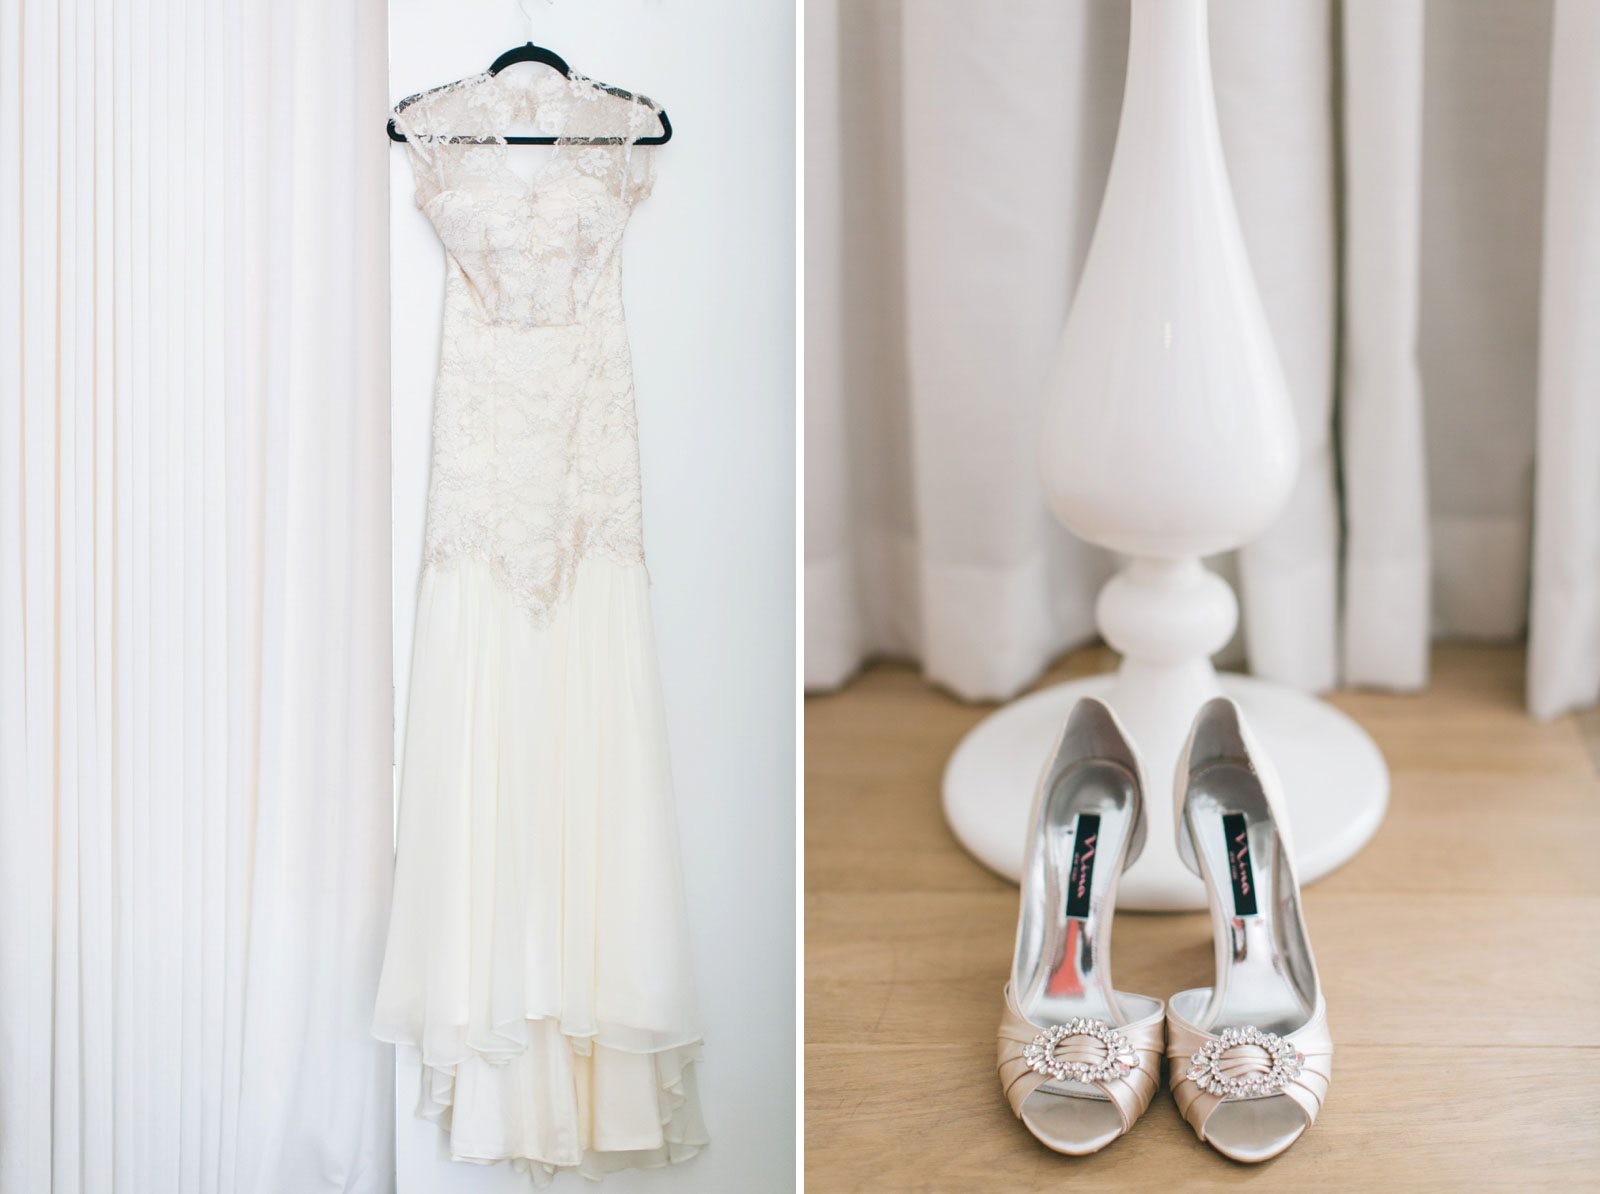 bride's simple lace wedding dress hanging up in bridal suite, detail shot of Nina bridal shoes